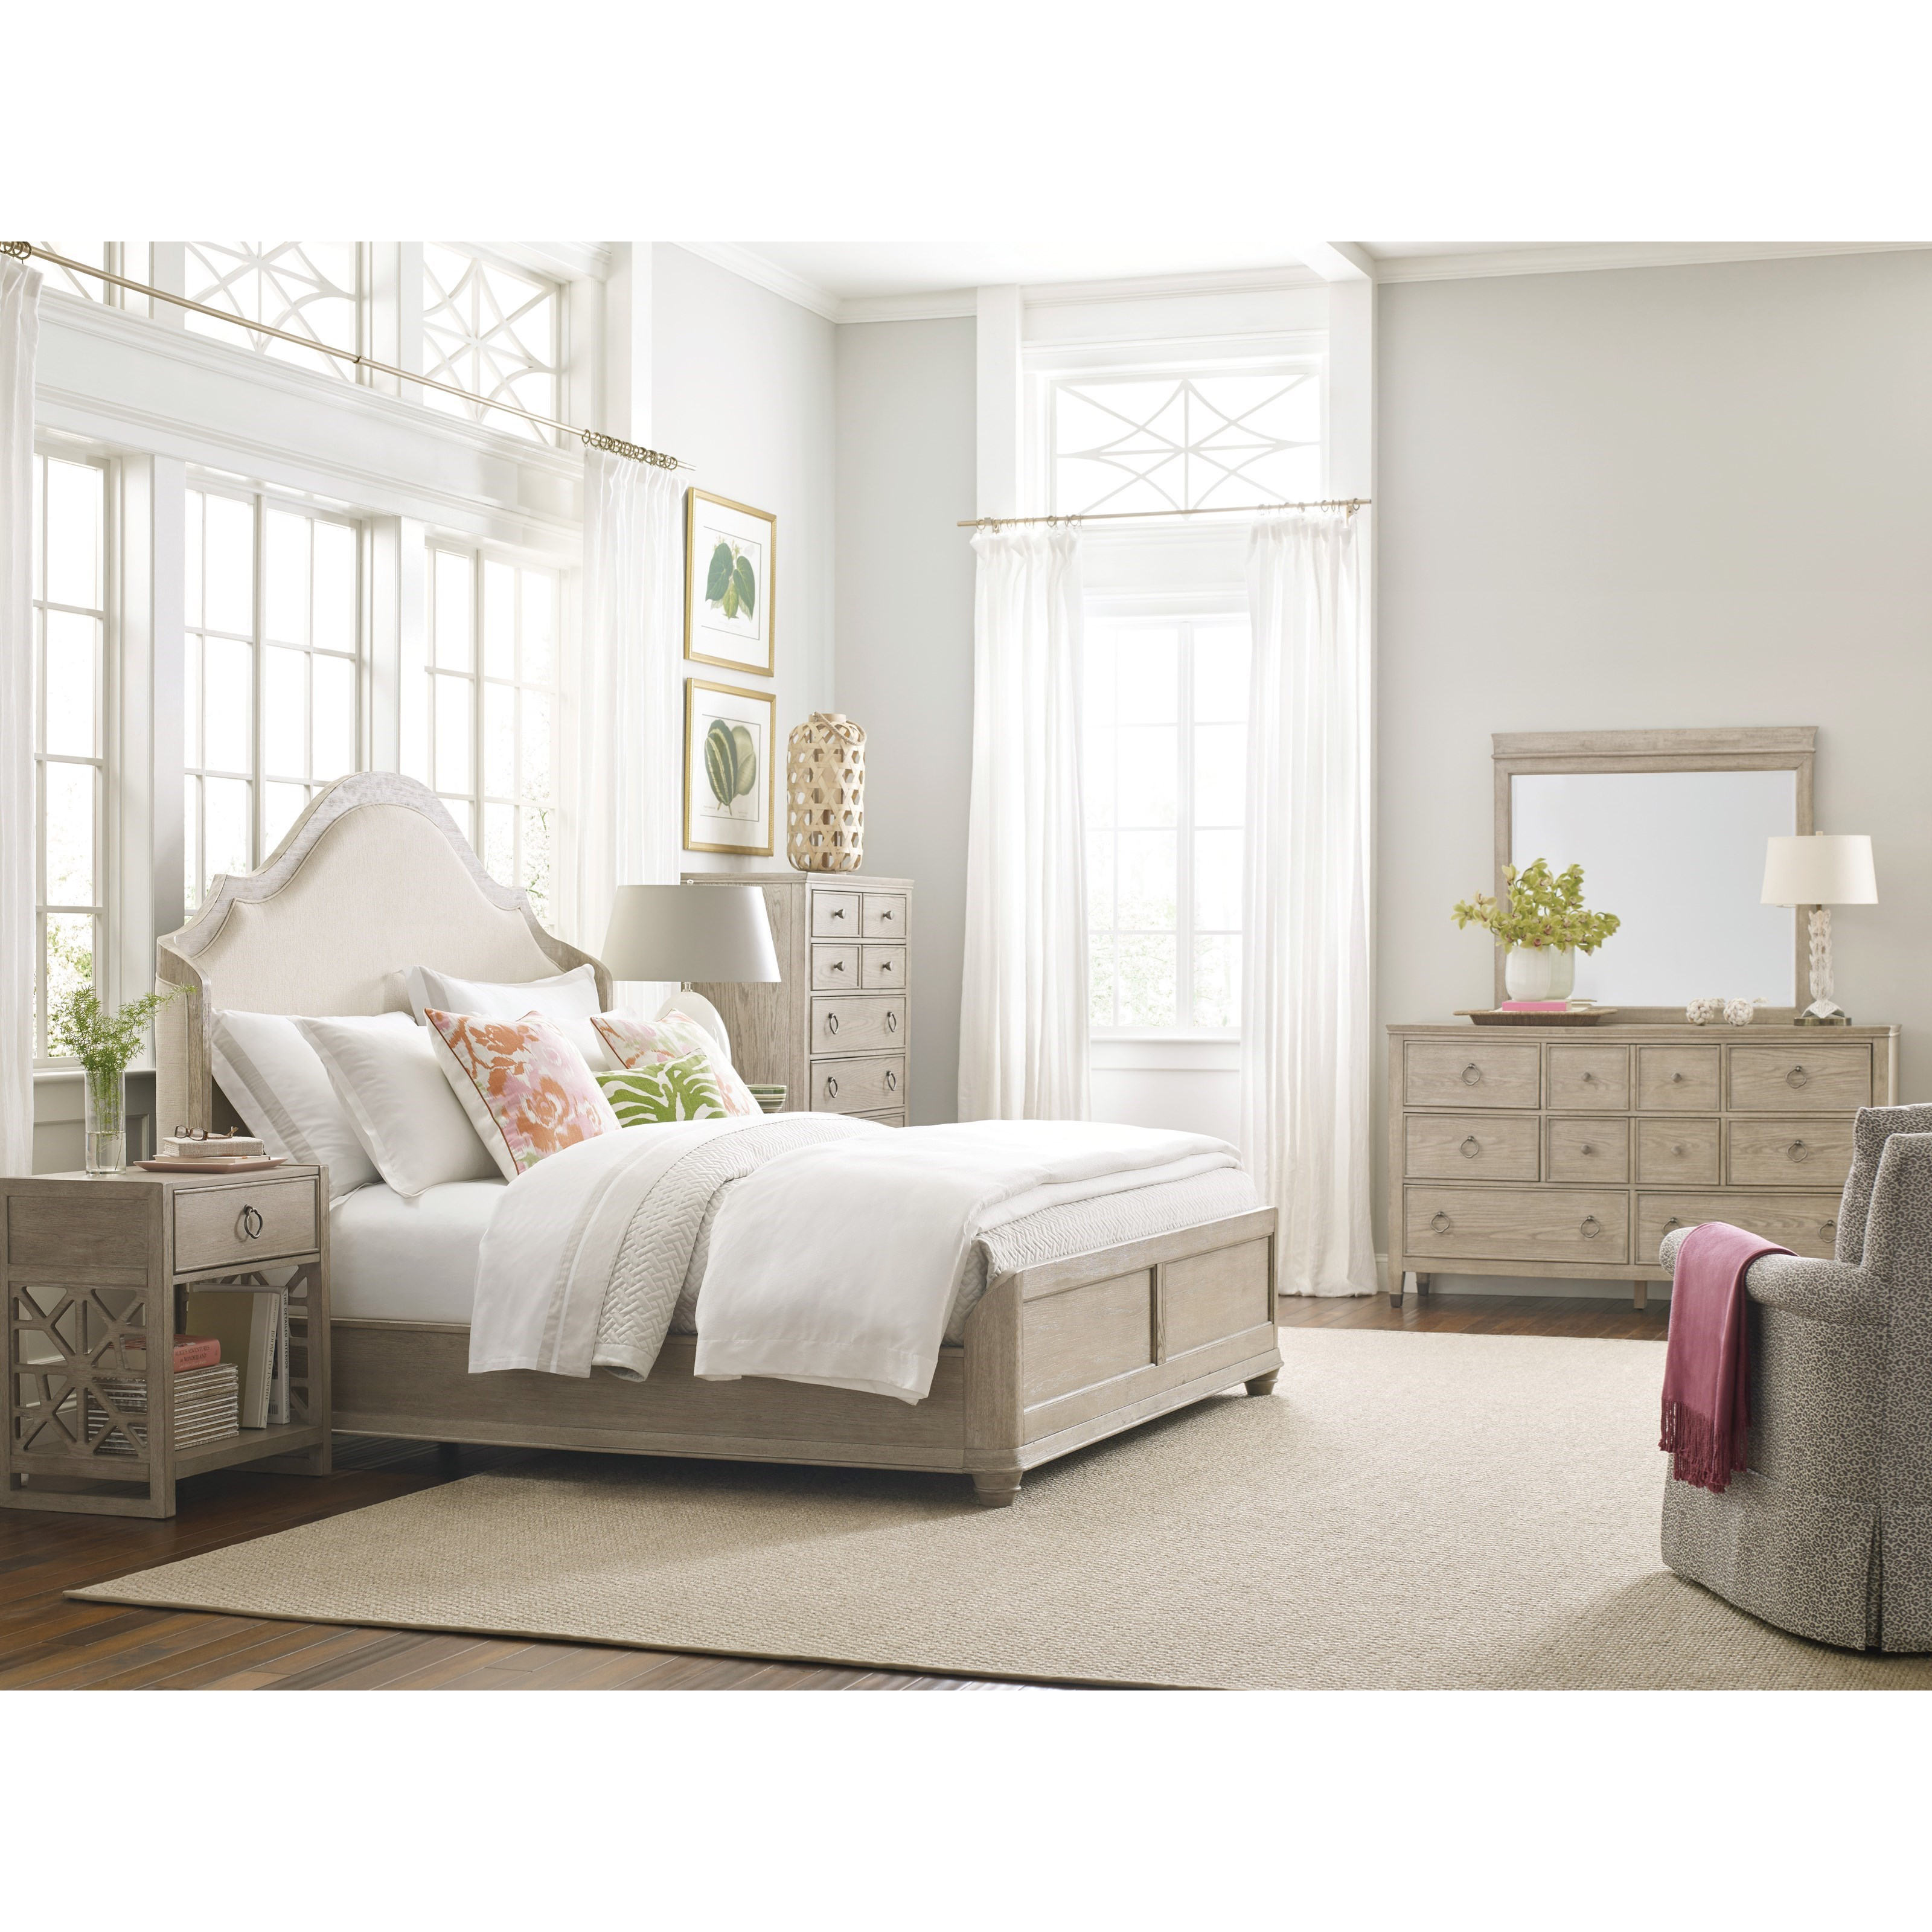 Vista Queen Bedroom Group by American Drew at Stoney Creek Furniture